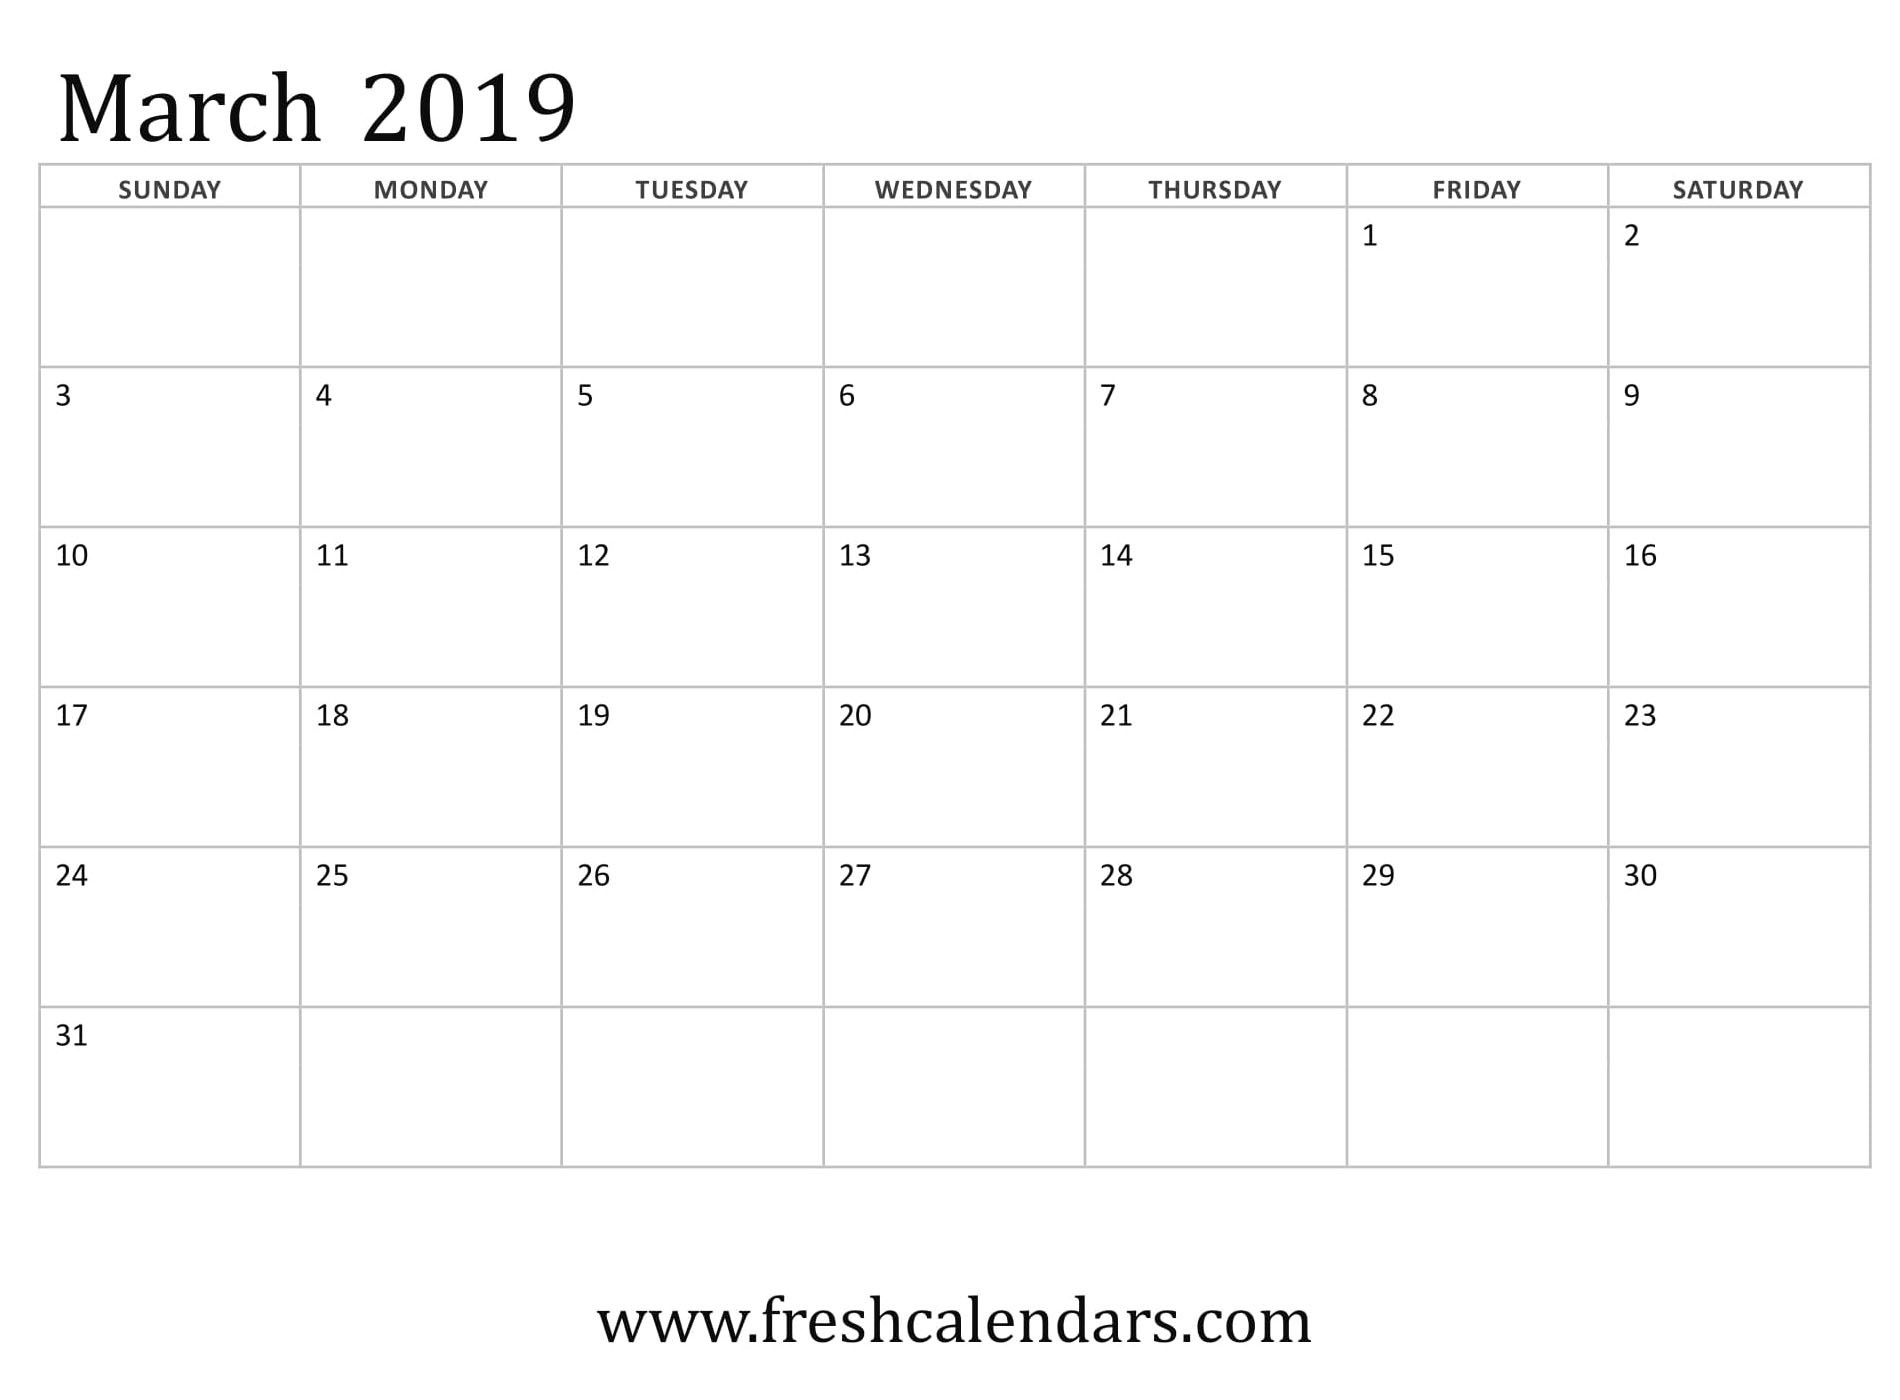 March Calendar 2019 Actual March 2019 Printable Calendars Fresh Calendars Of March Calendar 2019 Más Populares March 2019 Calendar Pdf Word Excel